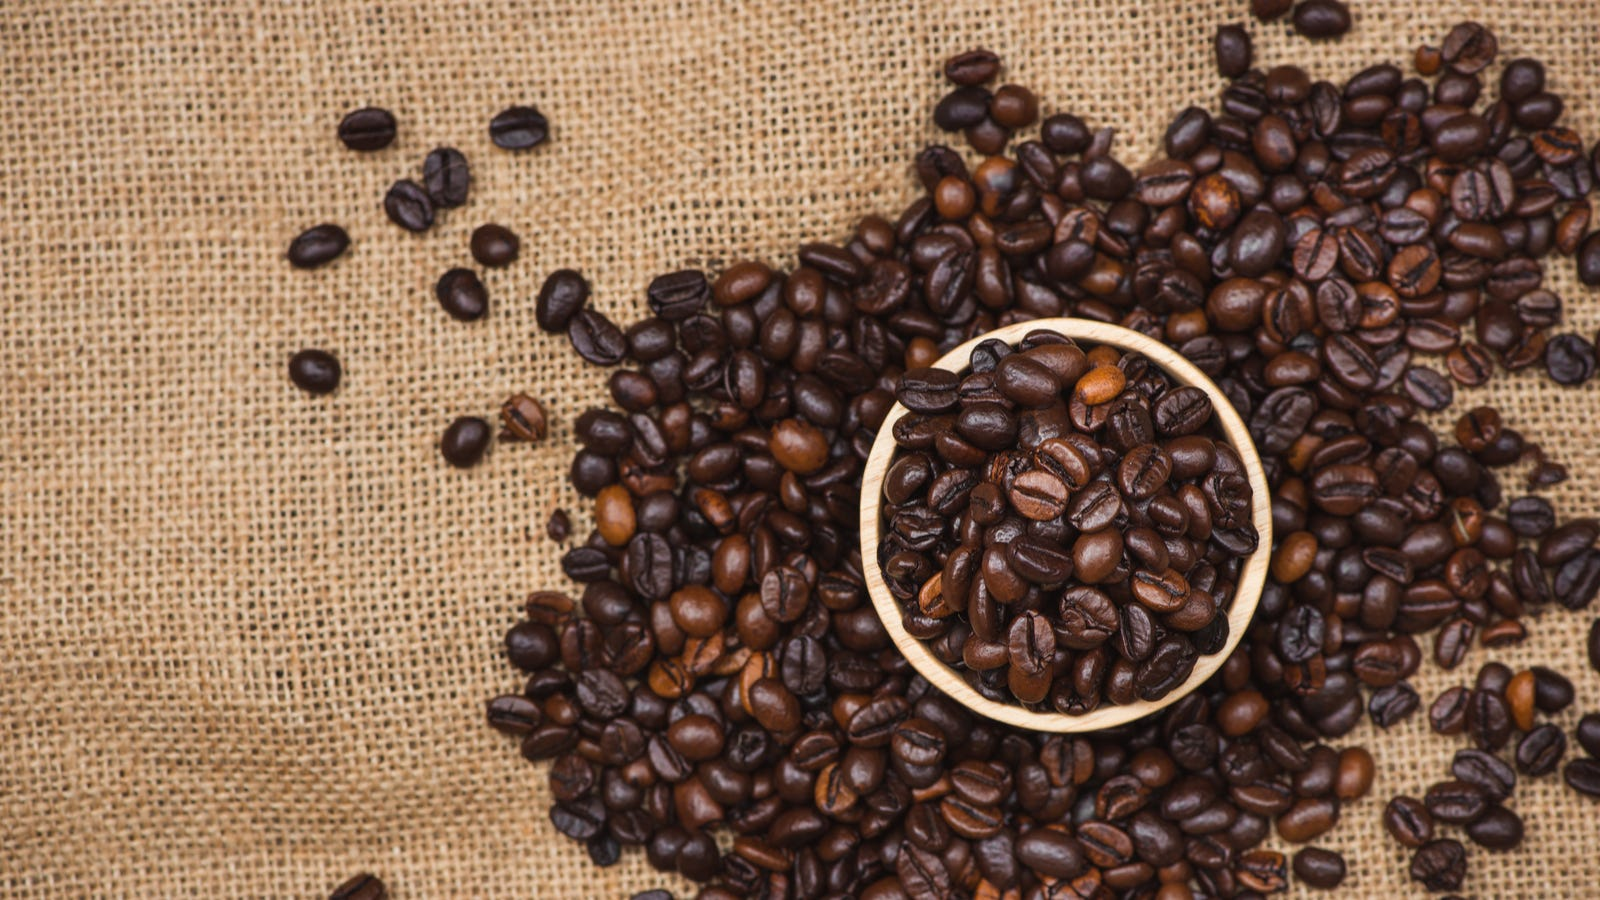 A cup overflowing with roasted coffee beans over a canvas background.